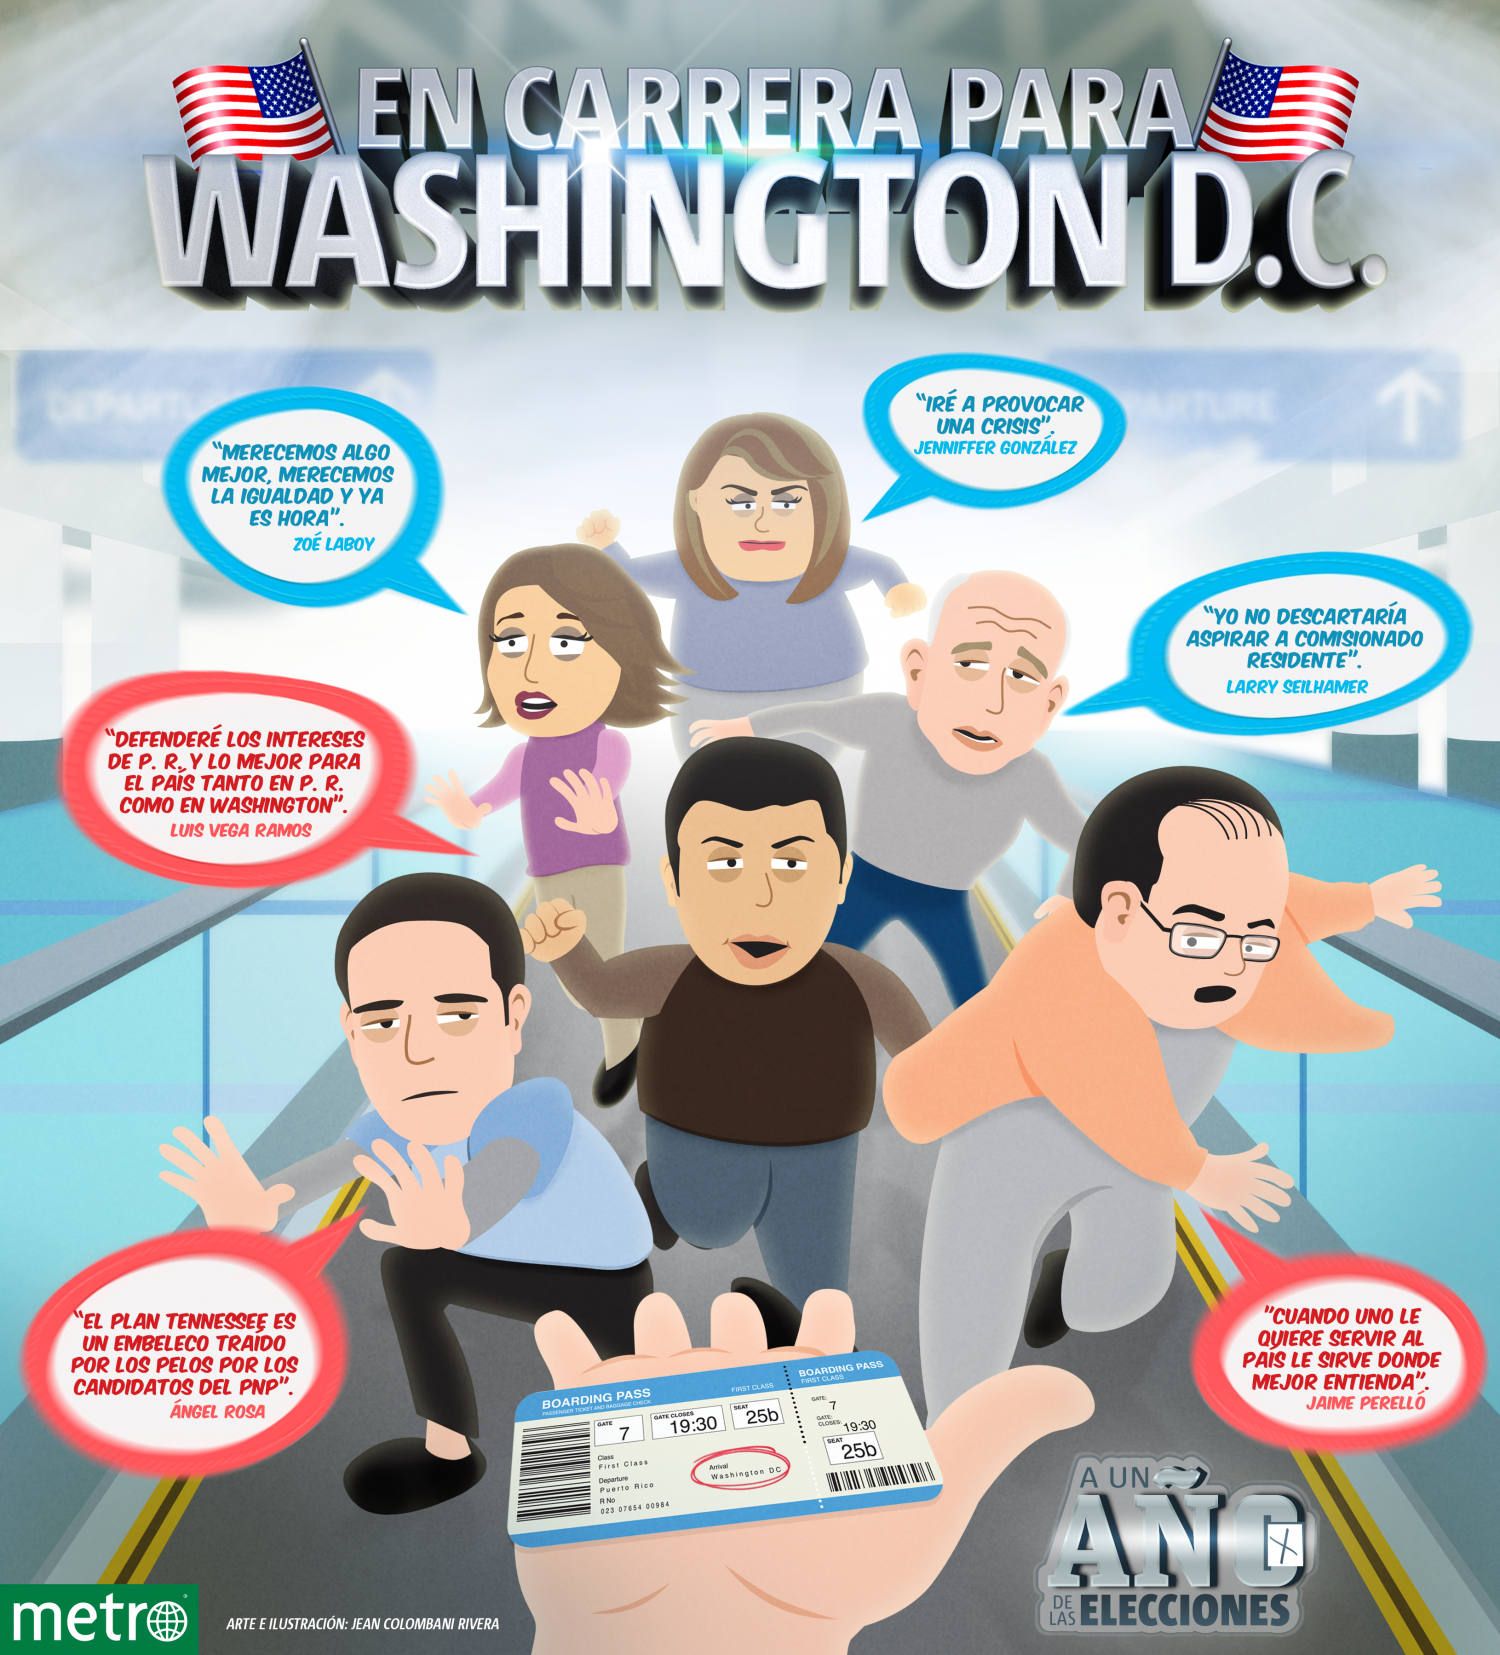 En Carrera para Washington D.C. Infographic